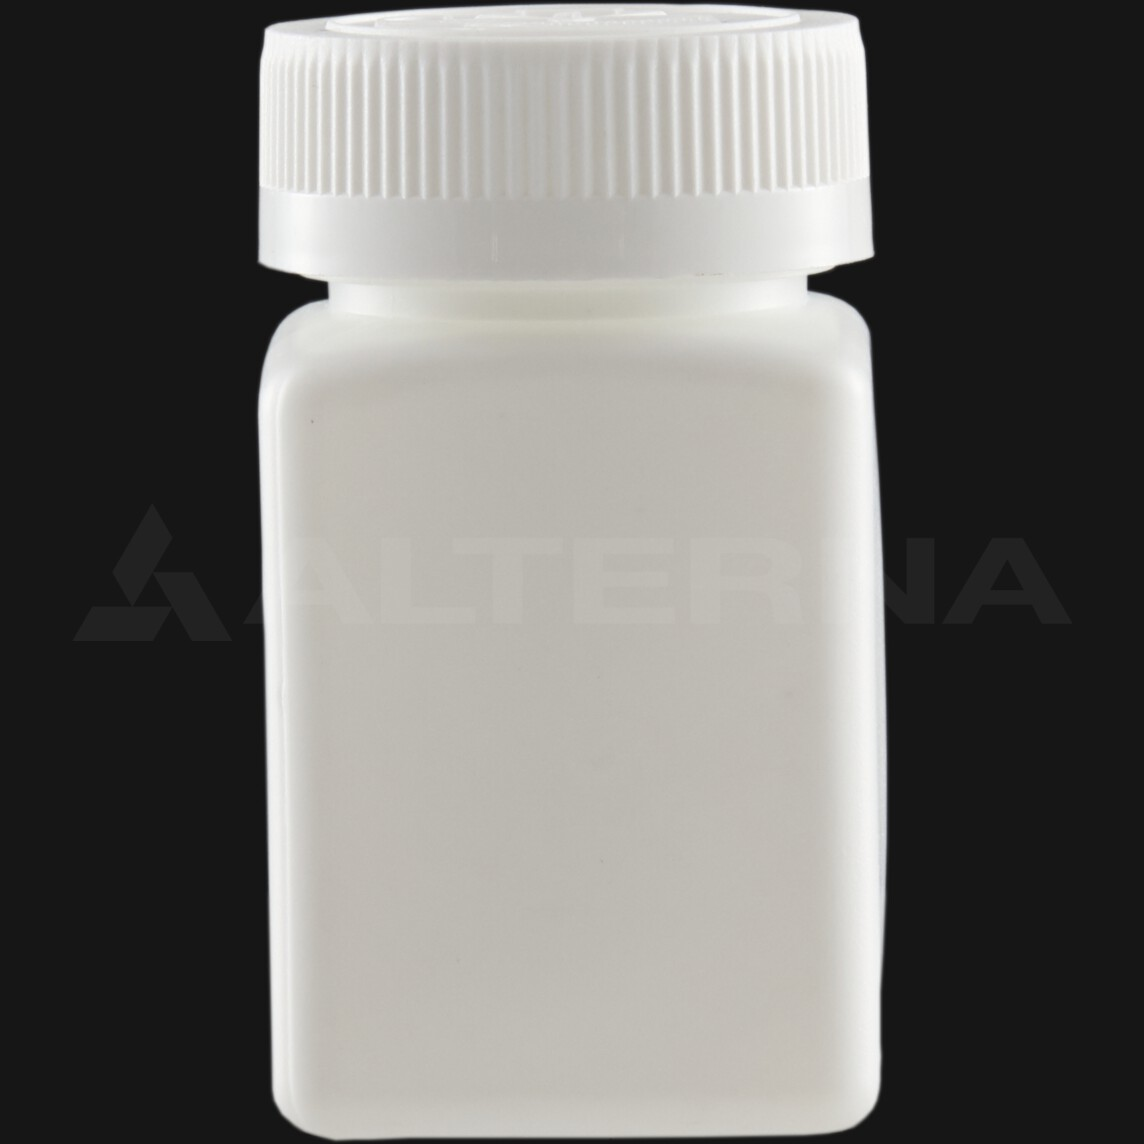 80 ml HDPE Square Pill Bottle with 38 mm Child Resistant Cap